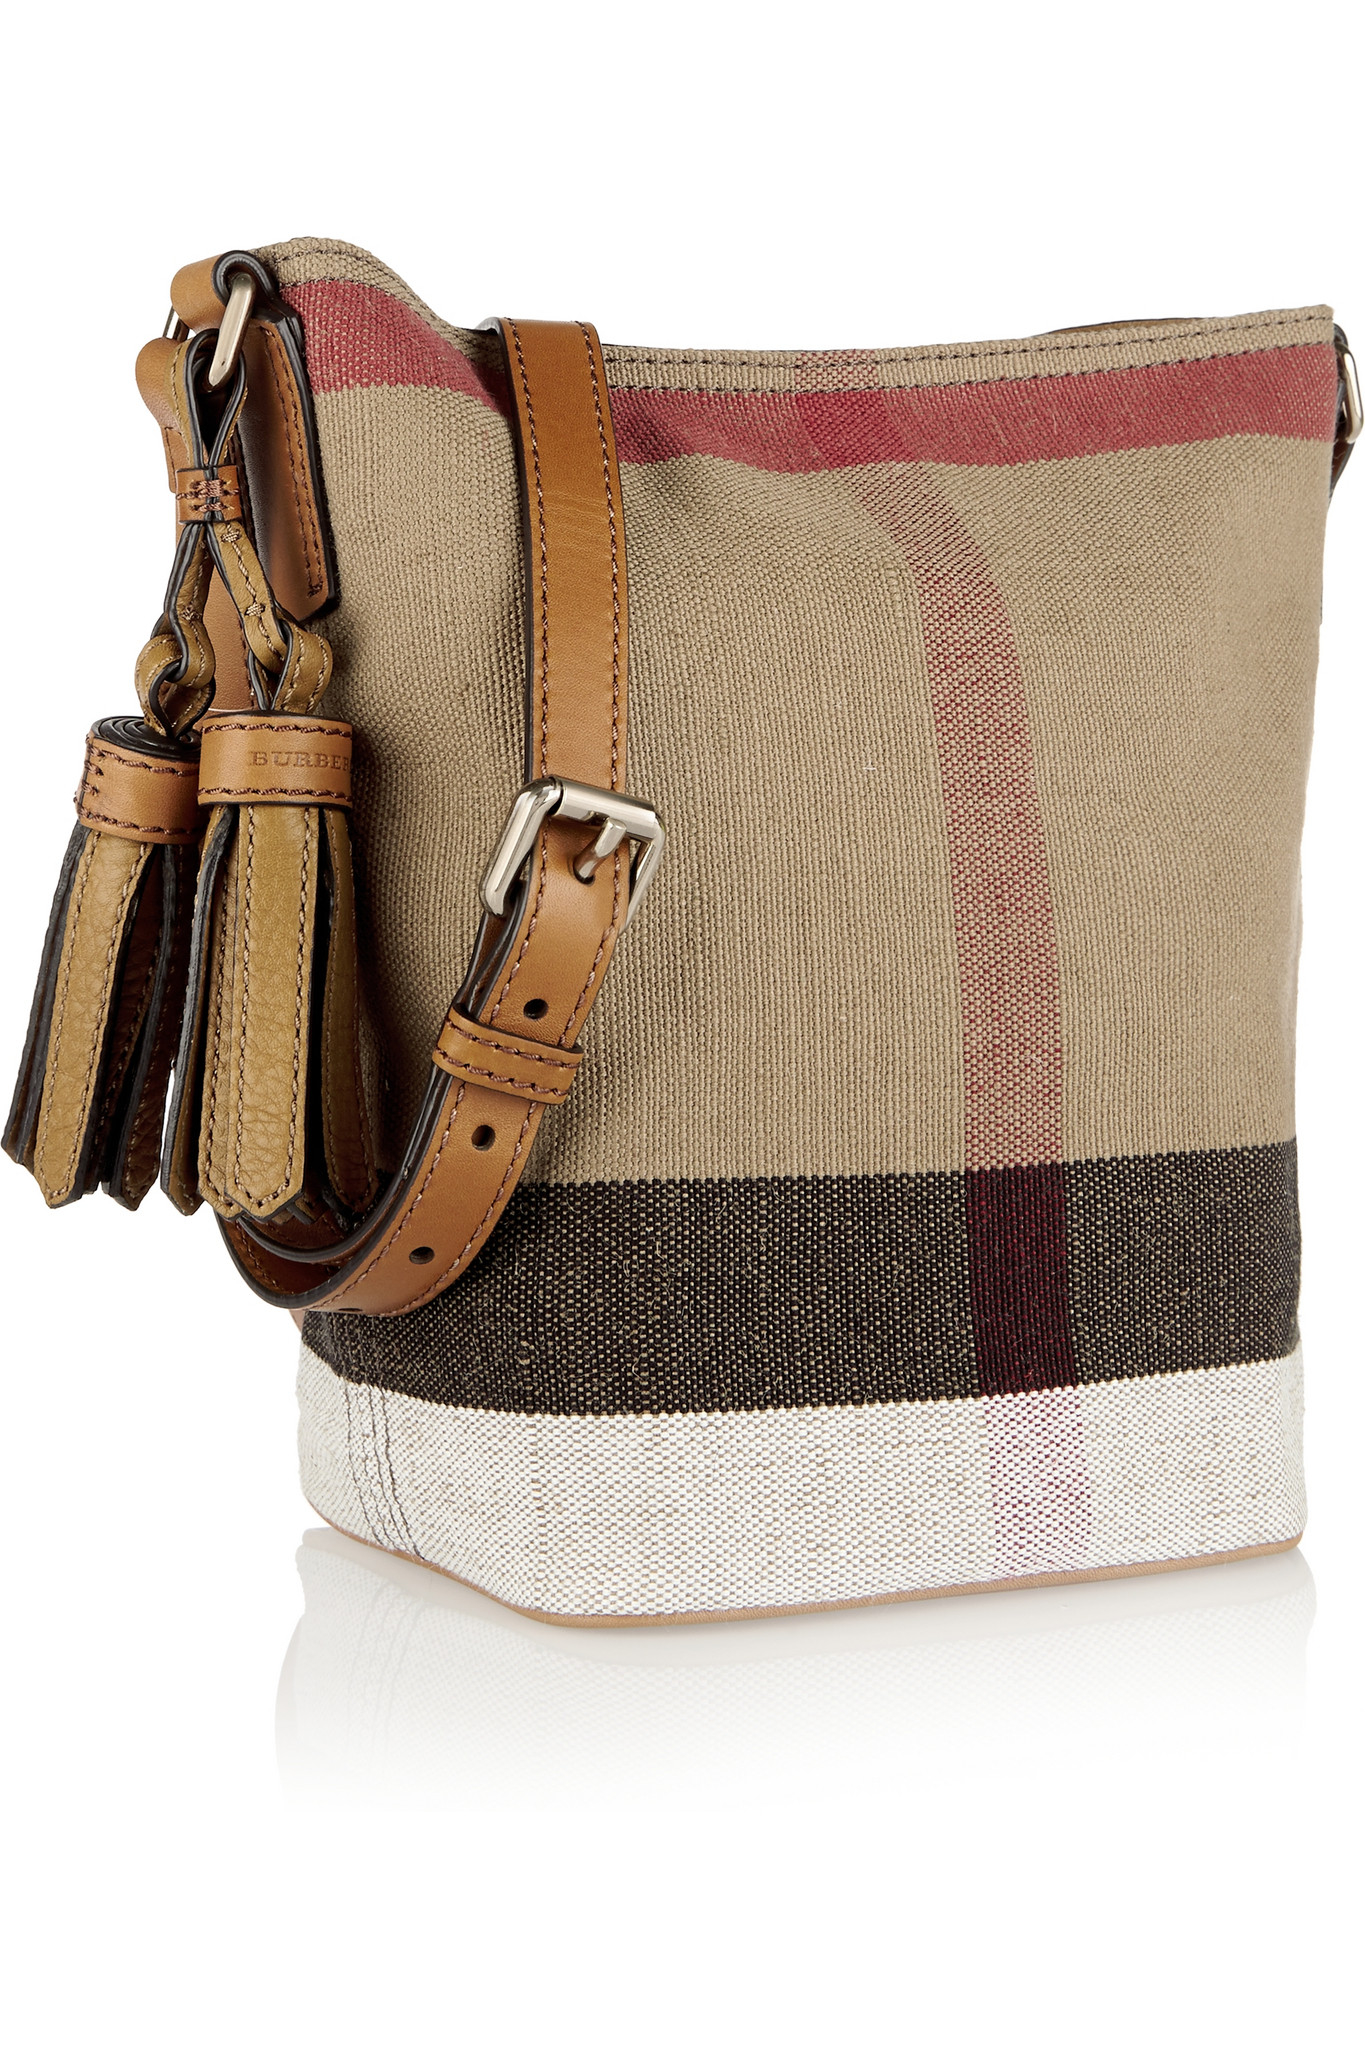 28ee28d4bf74 Lyst - Burberry Mini Leather-trimmed Checked Canvas Shoulder Bag in Brown